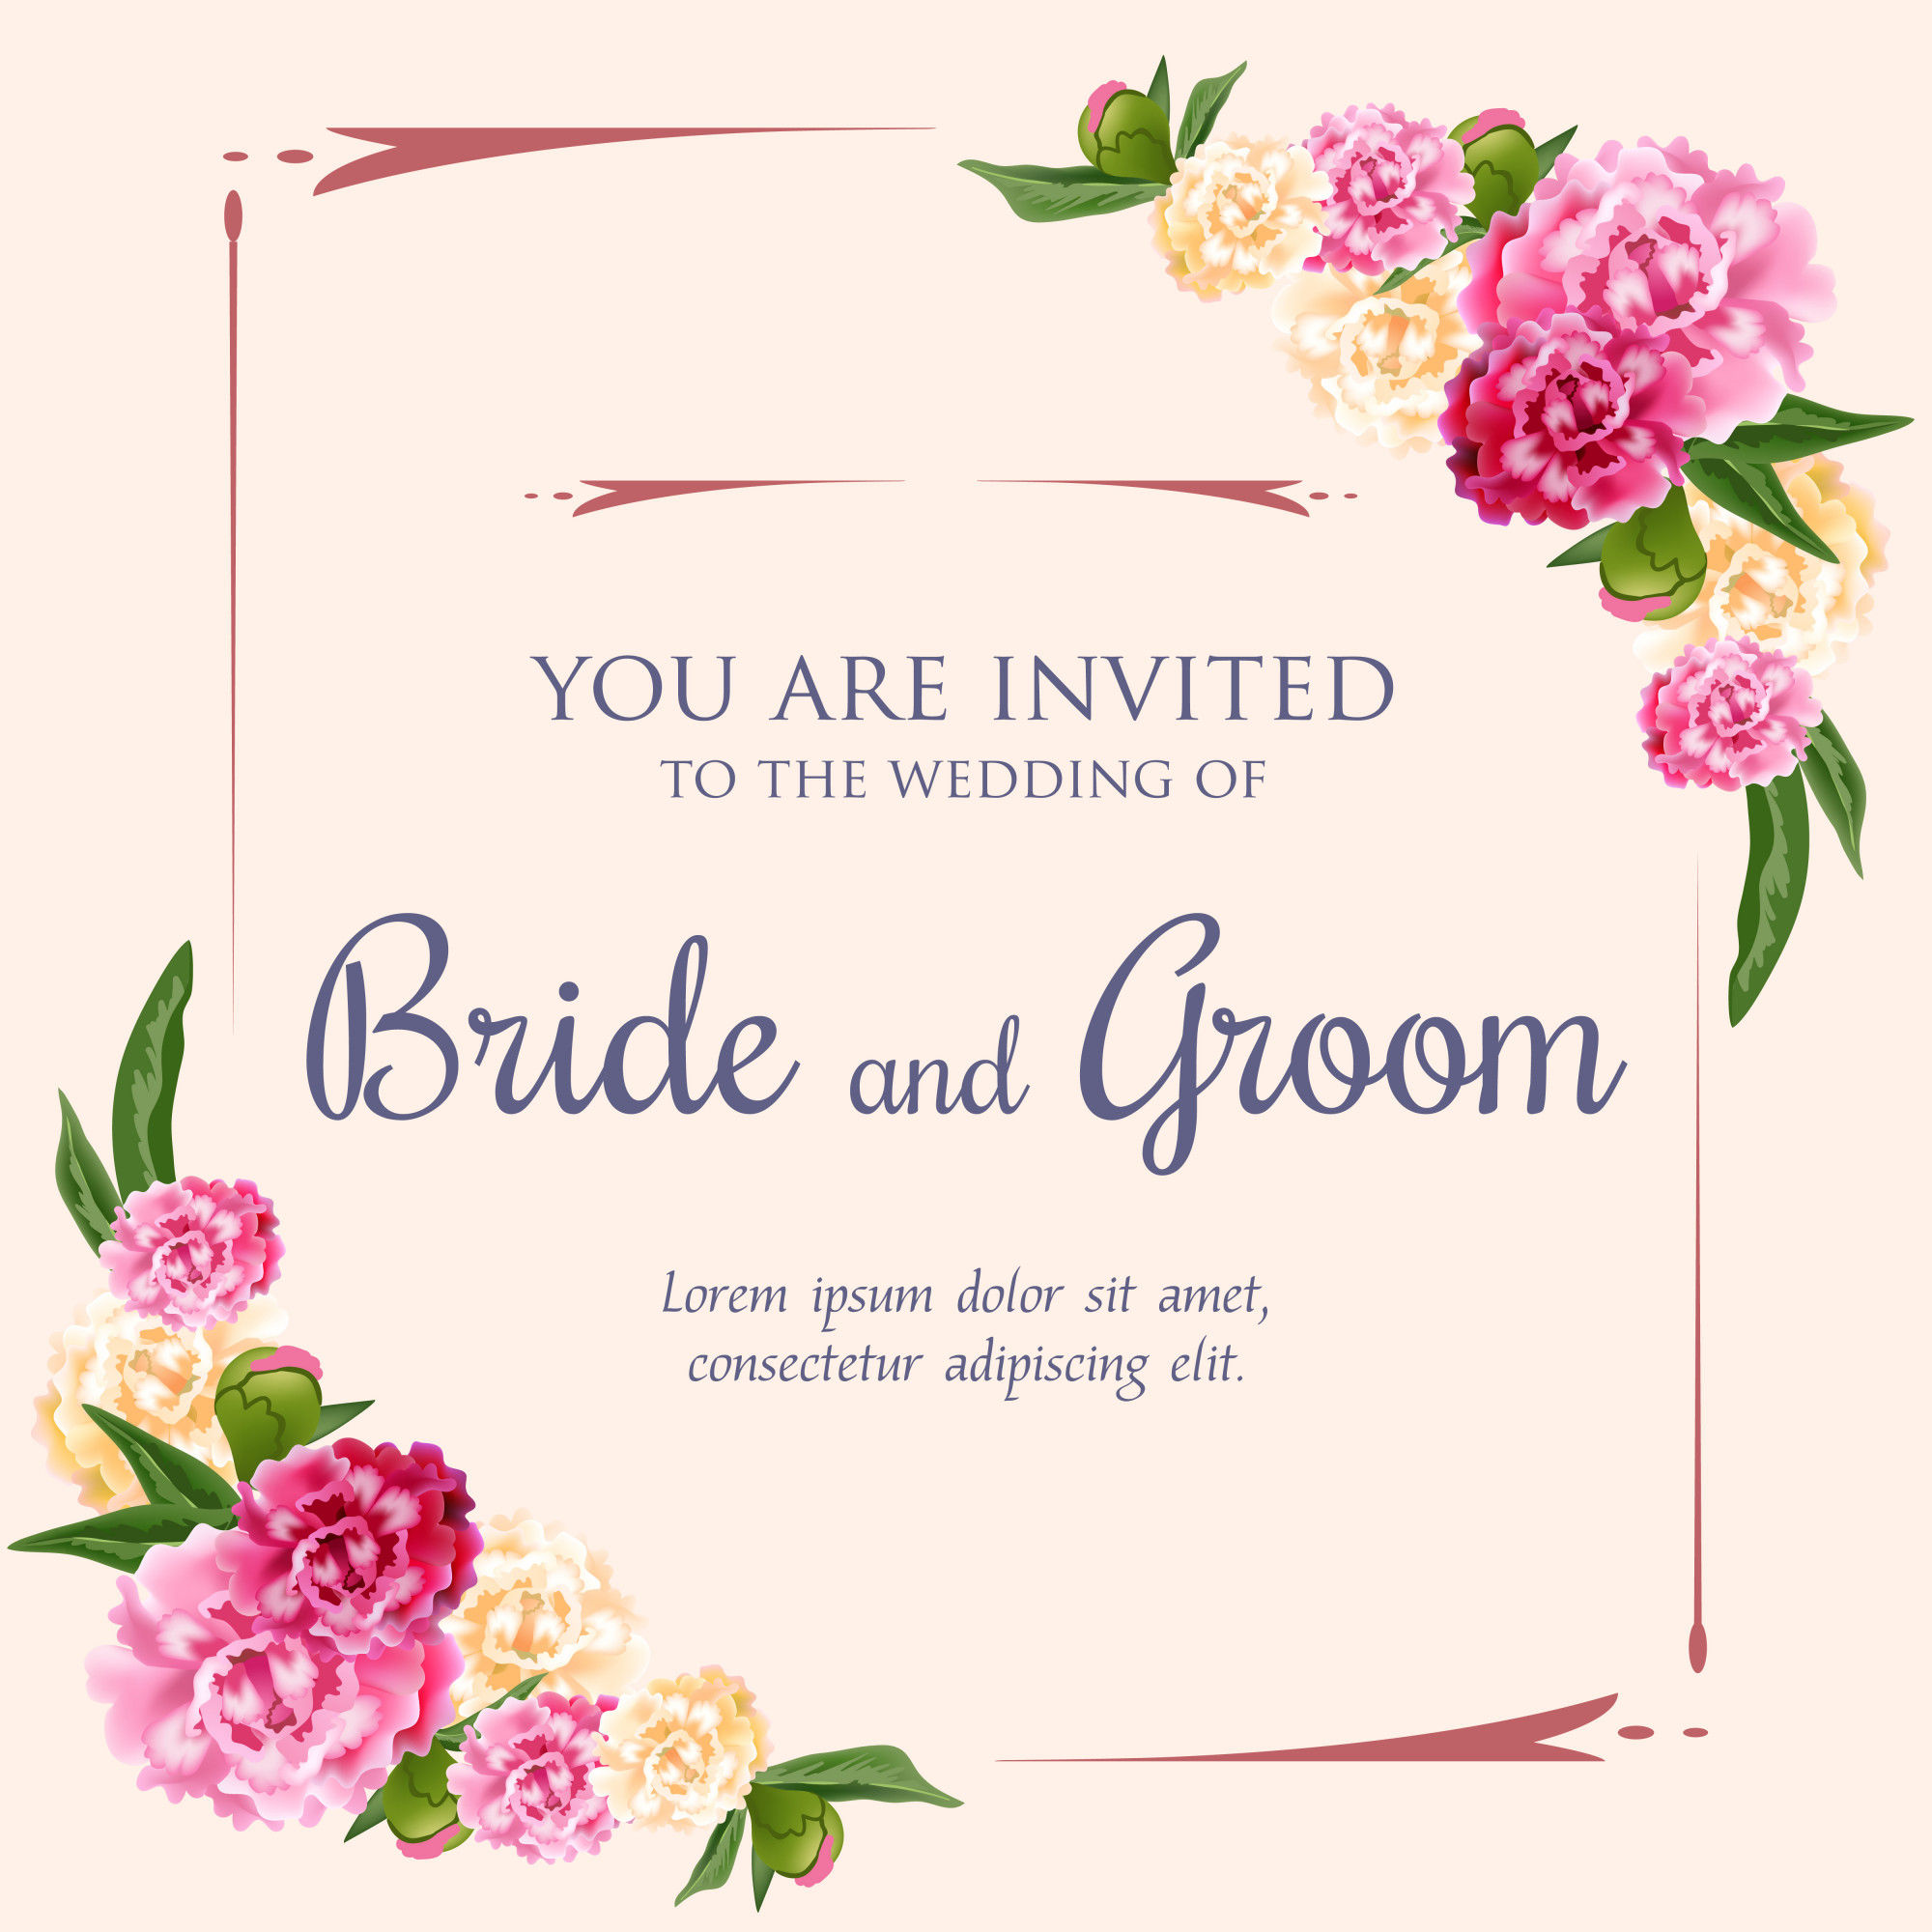 Wedding invitation with pink and white peonies on pink background.